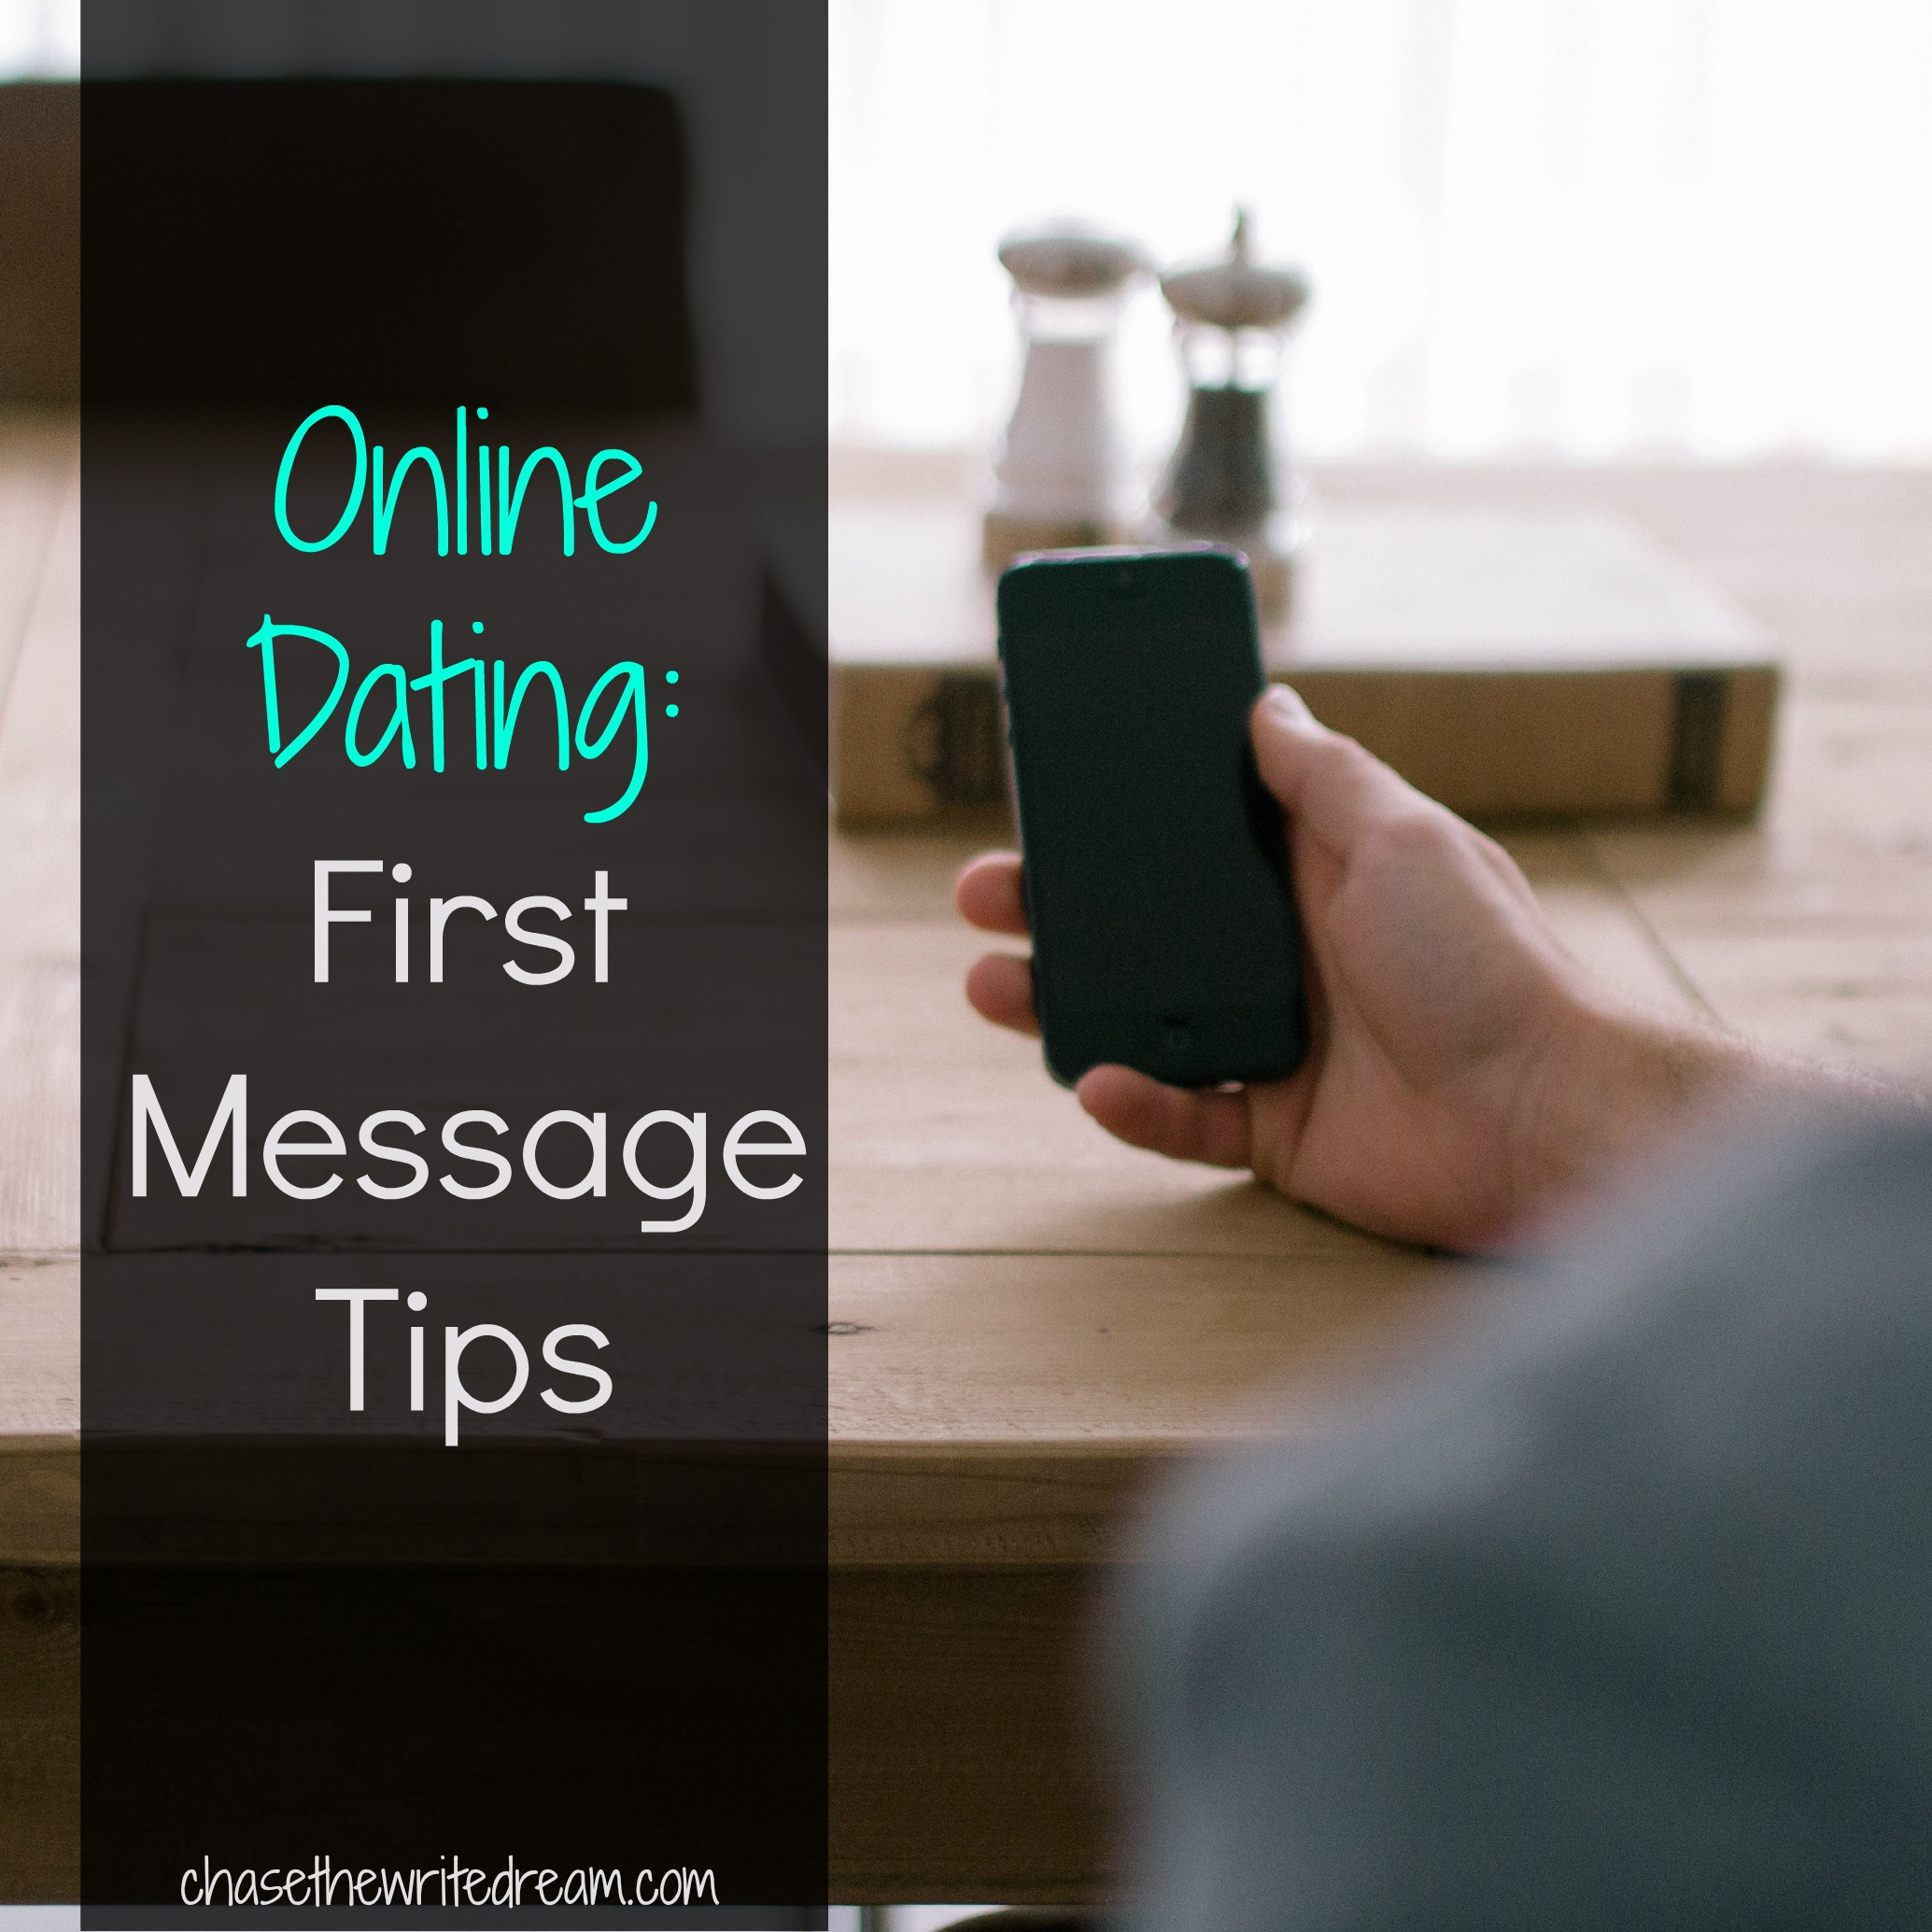 Internet dating advice first message